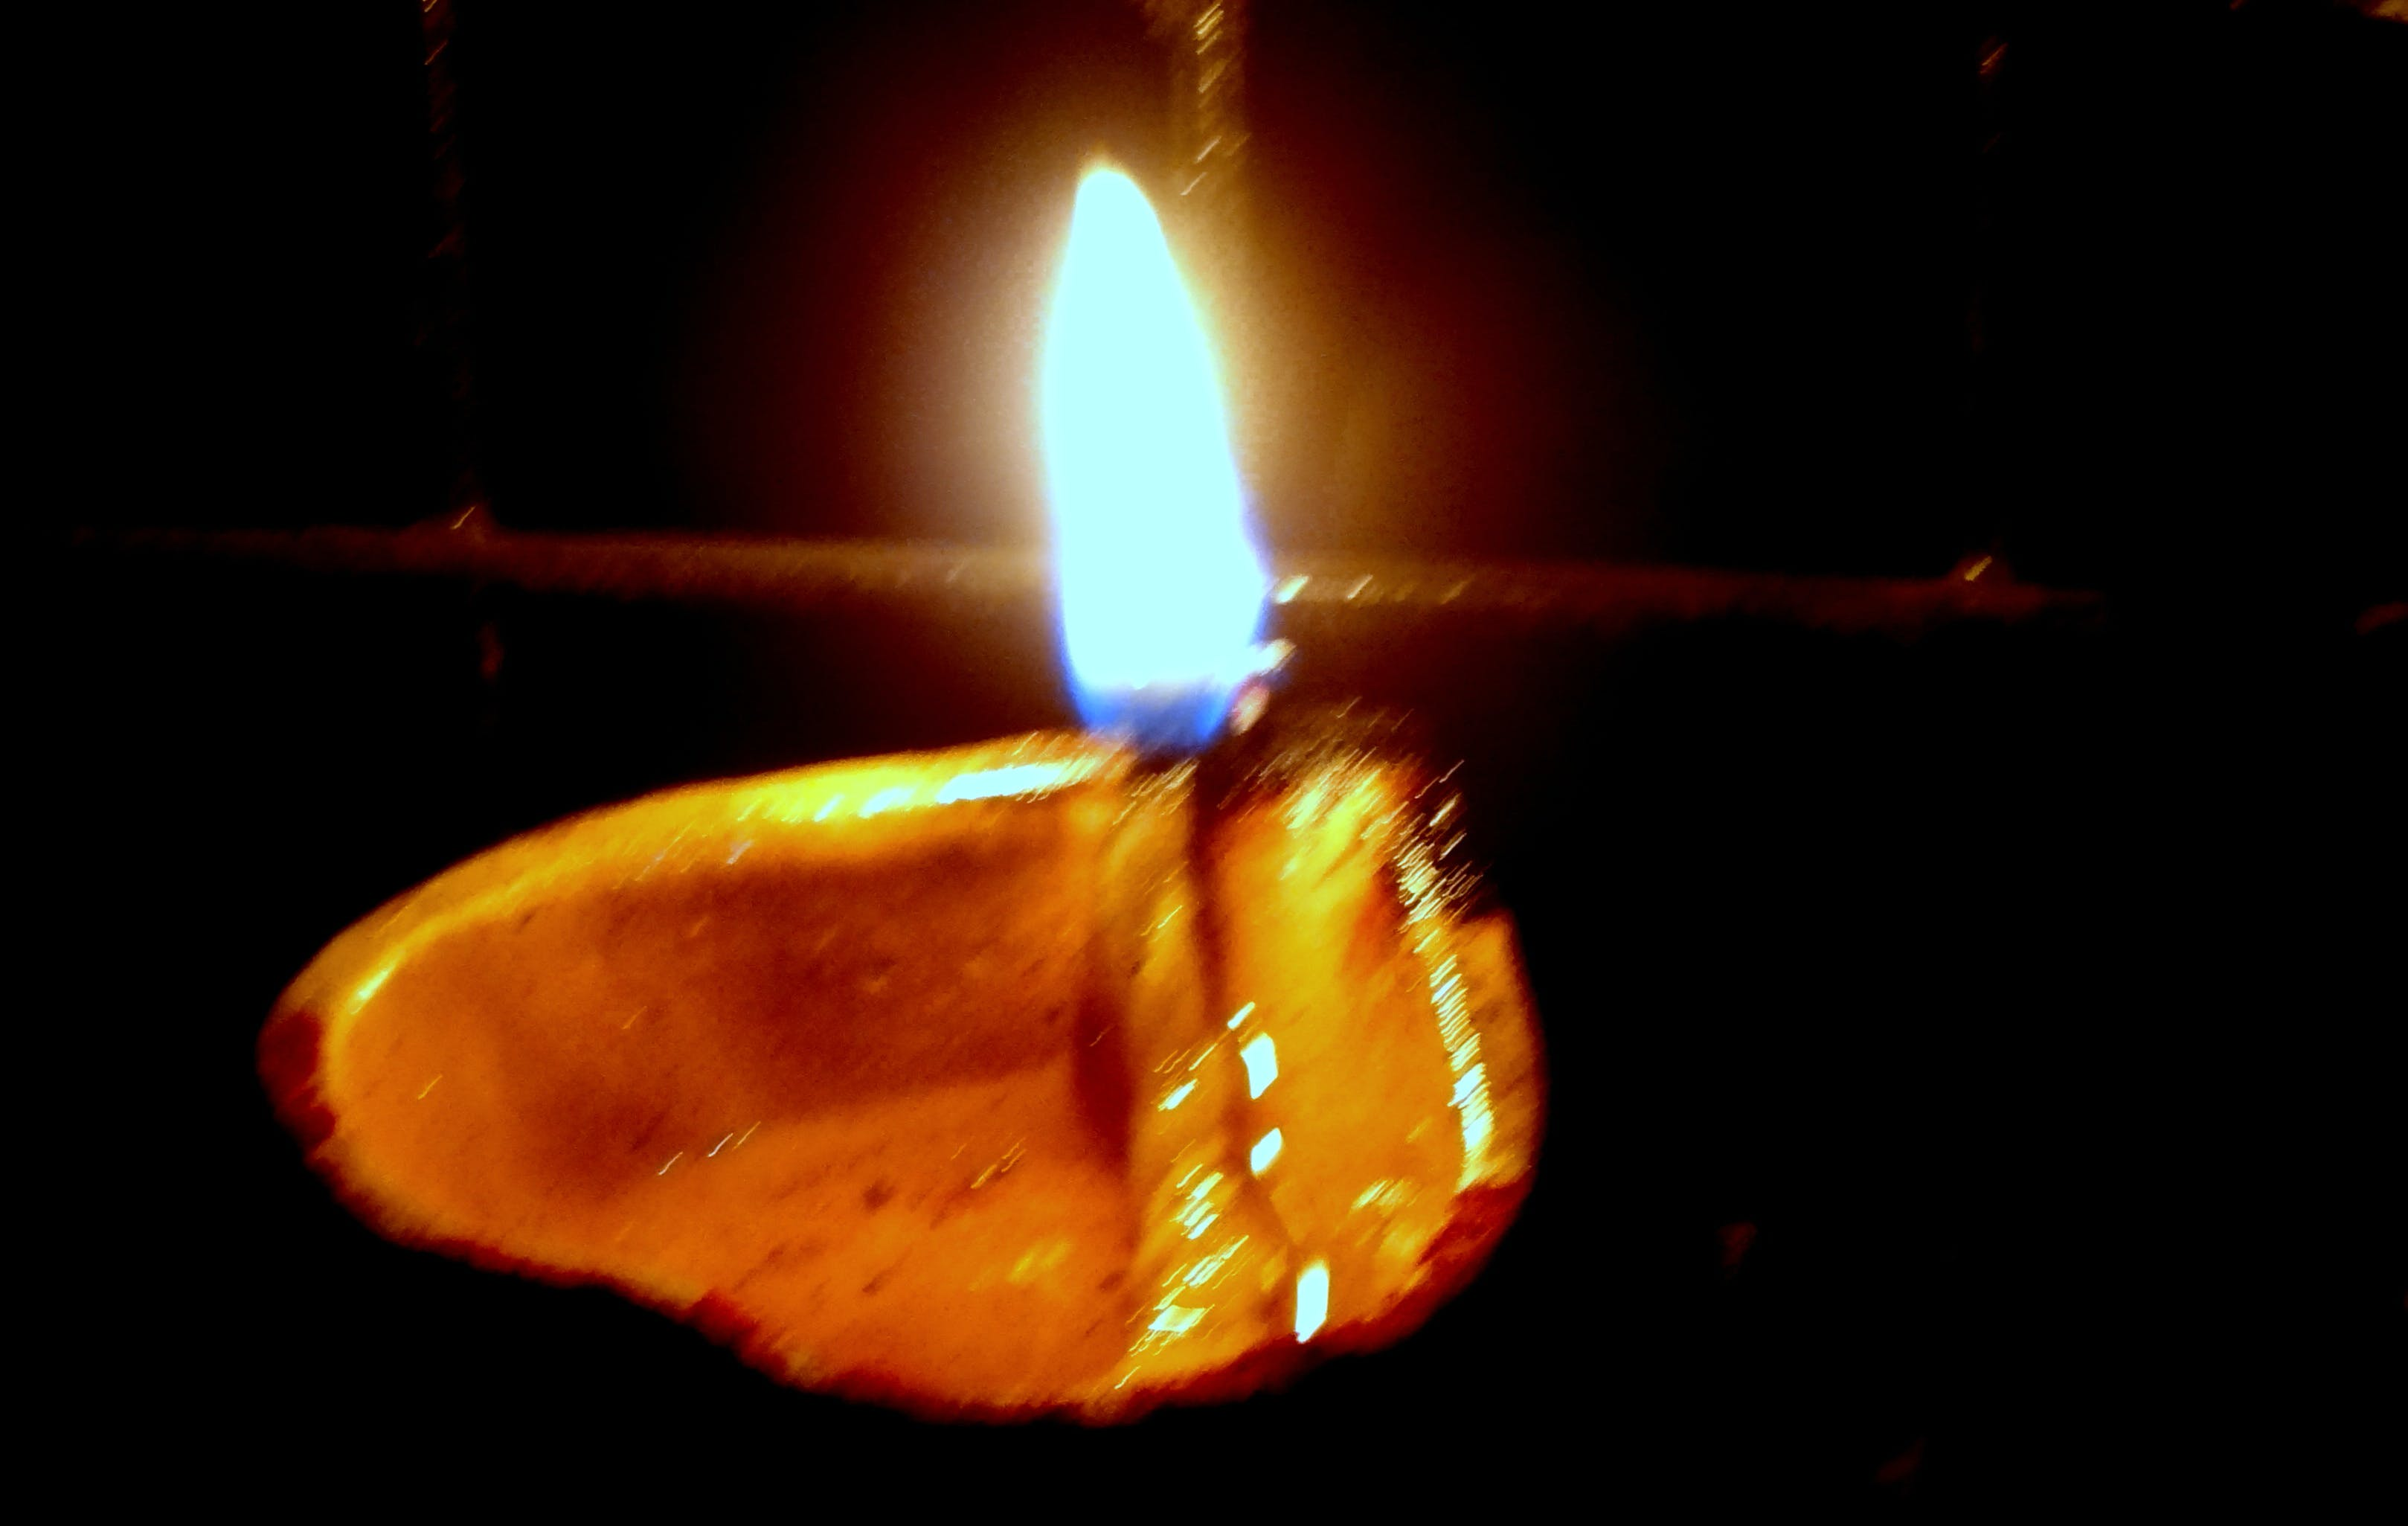 Free stock photo of 'OIL-LAMP'.....!